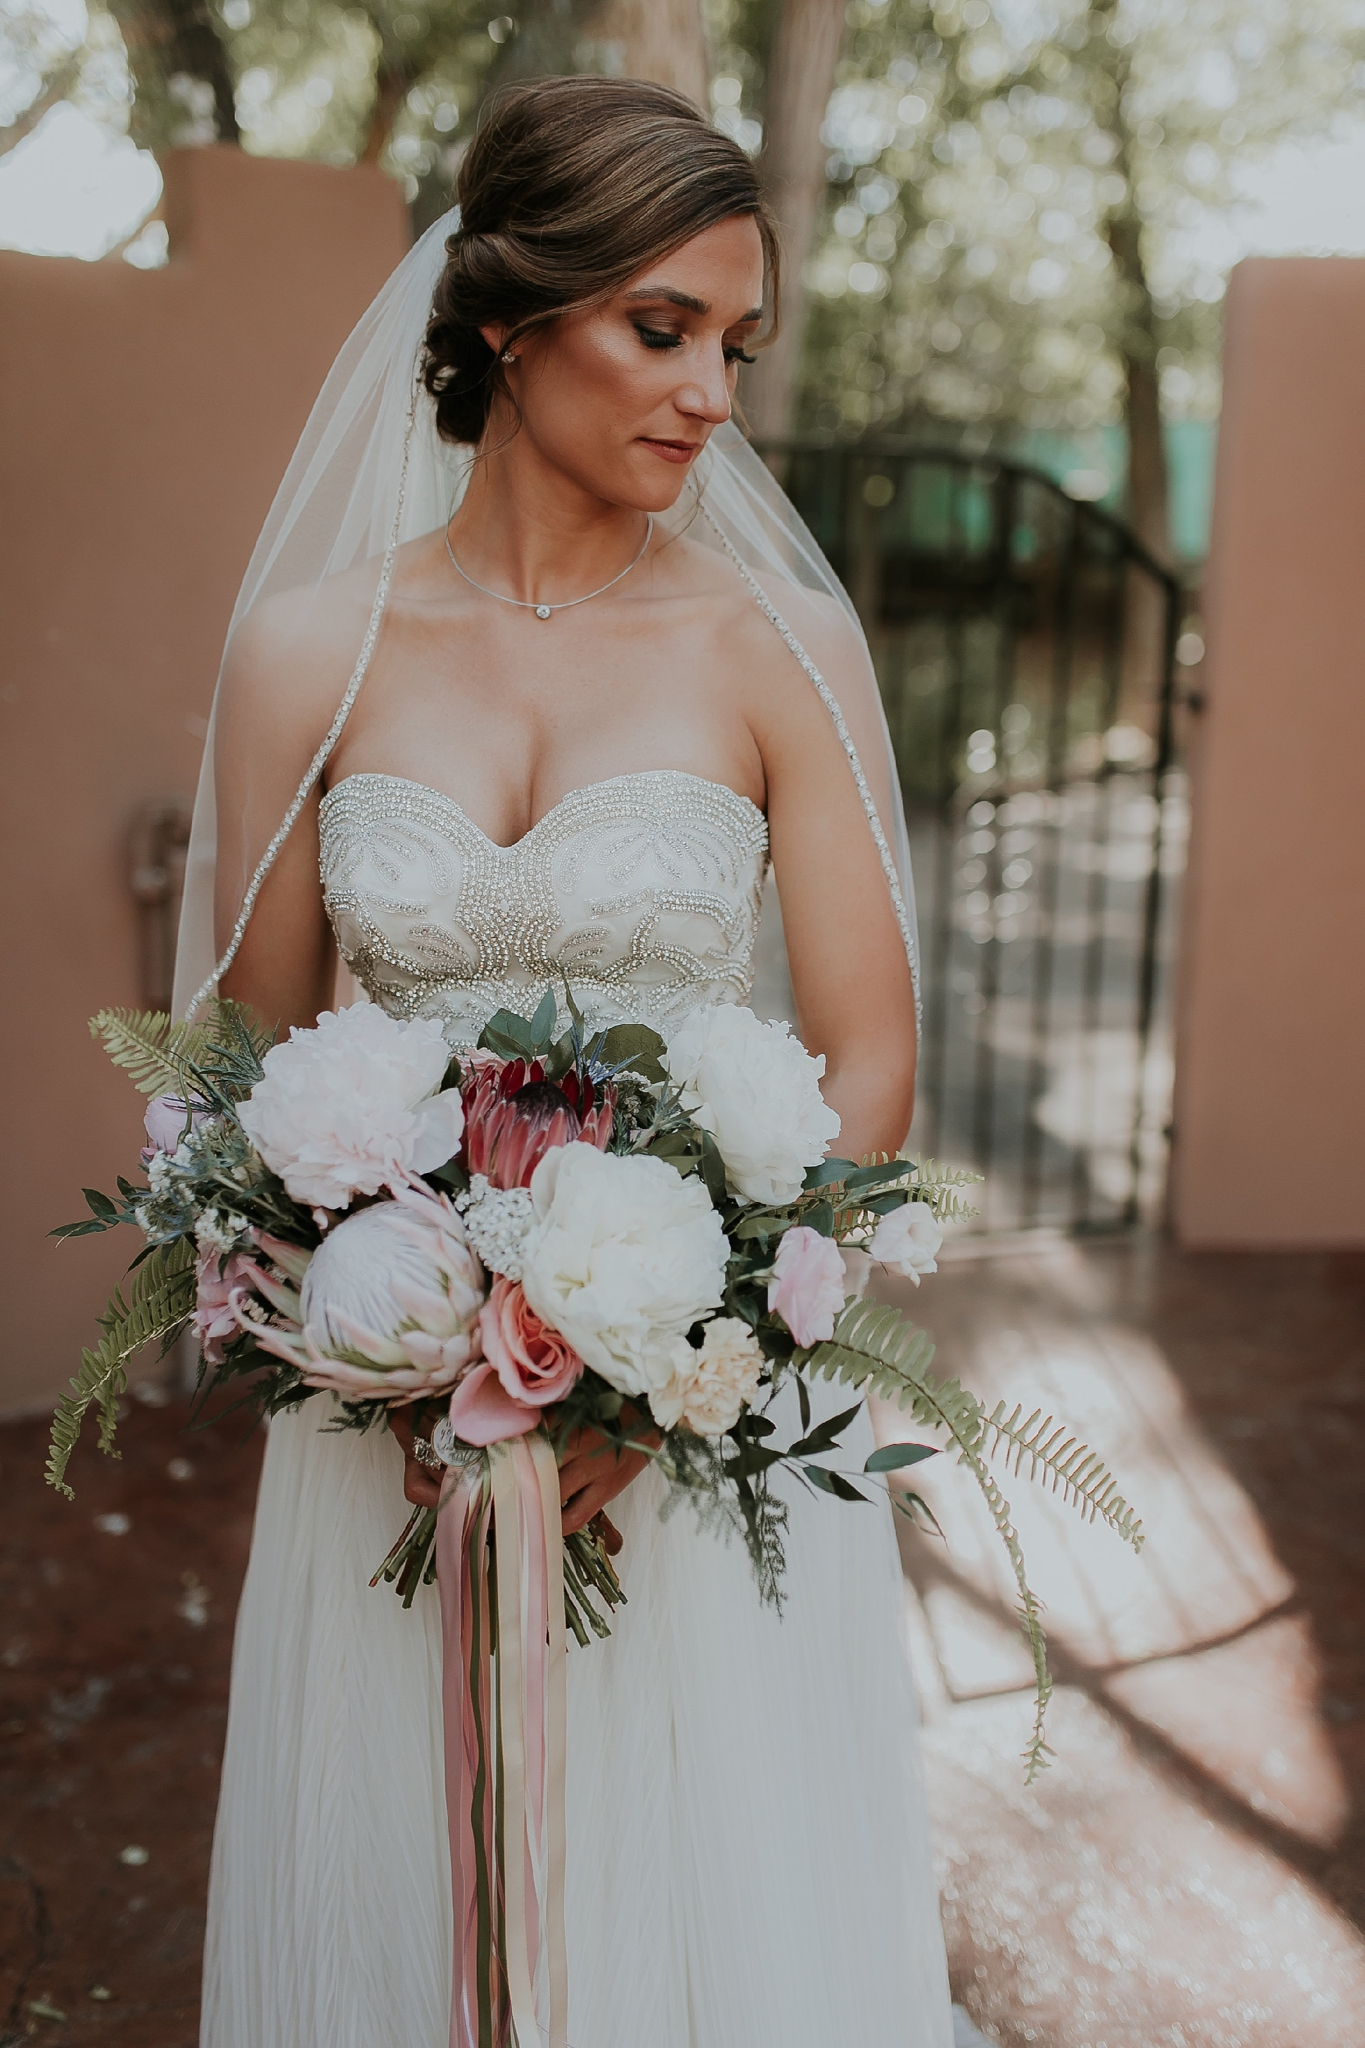 Alicia+lucia+photography+-+albuquerque+wedding+photographer+-+santa+fe+wedding+photography+-+new+mexico+wedding+photographer+-+new+mexico+wedding+-+wedding+makeup+-+makeup+artist+-+wedding+makeup+artist+-+bridal+makeup_0076.jpg